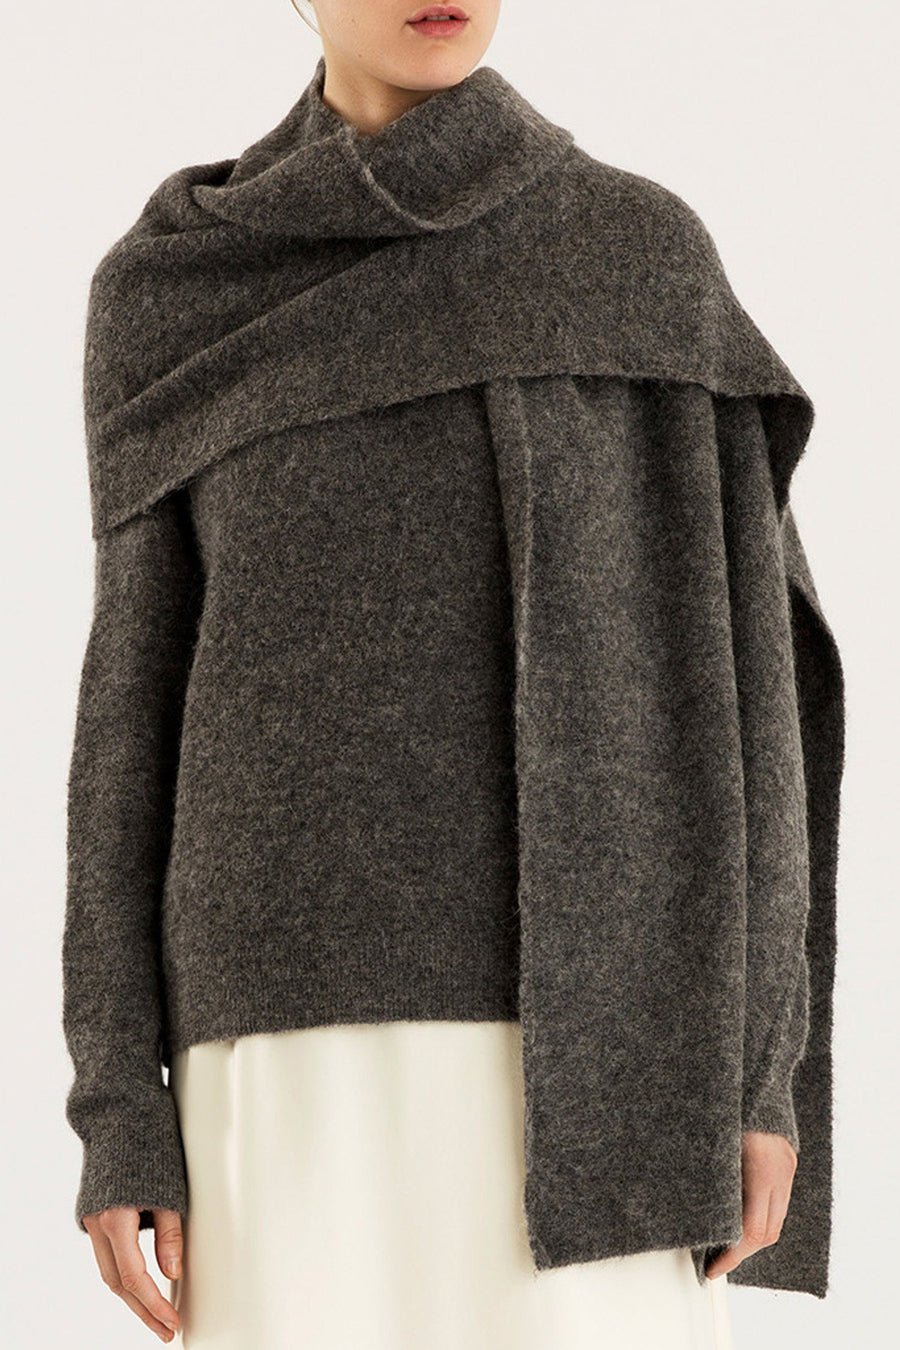 ELSA SCARF - GREY Sweater Stylein